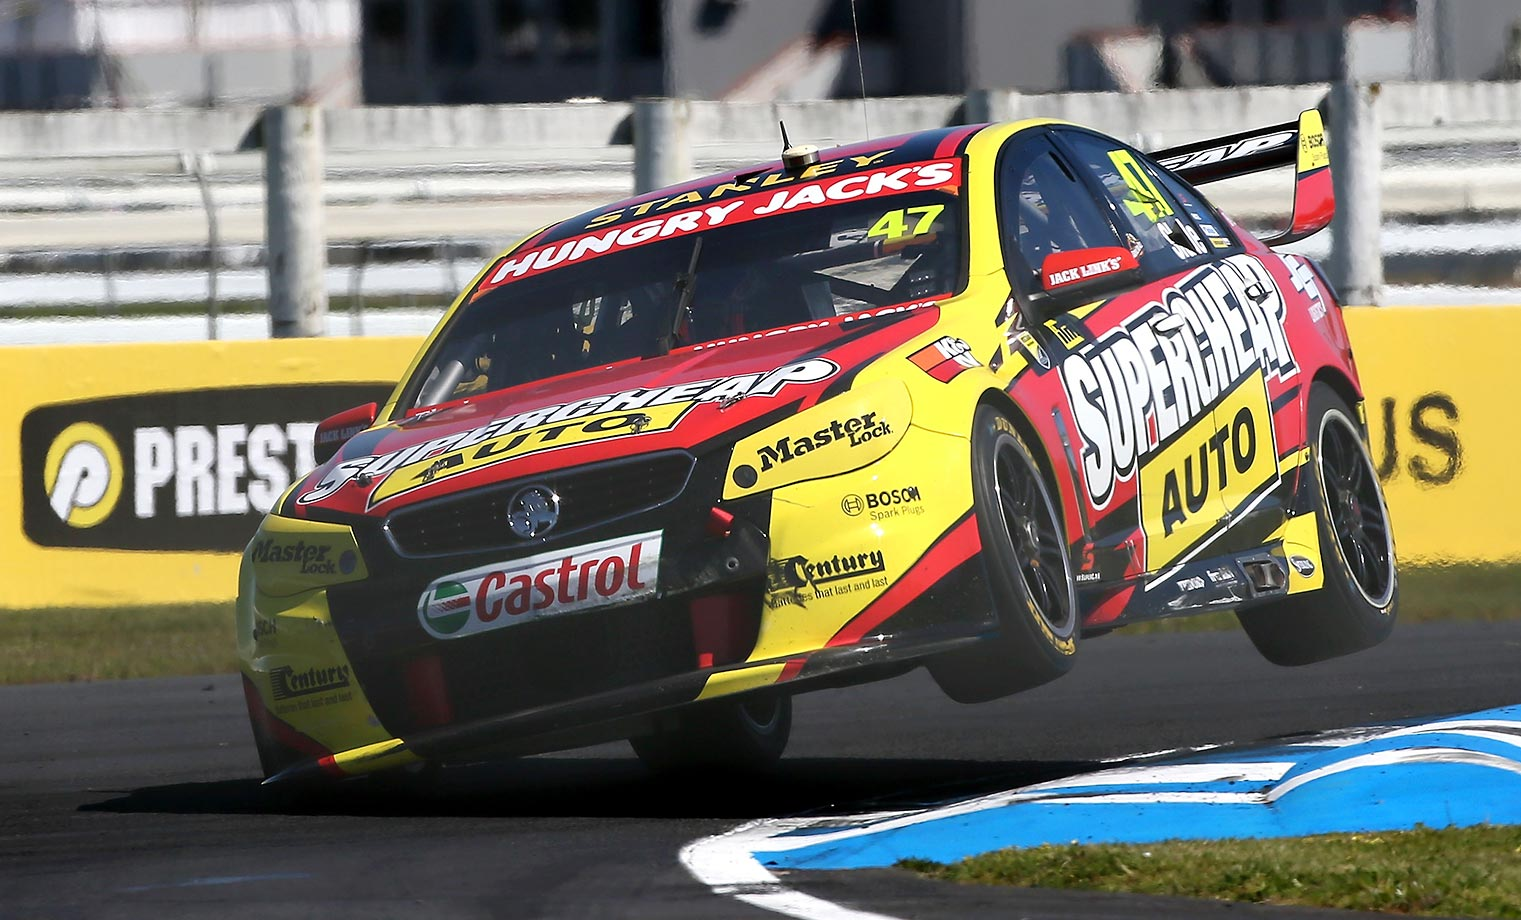 Tim Slade of Supercheap Auto Racing during a race at Pukekohe Stadium. We just like the name of his team.